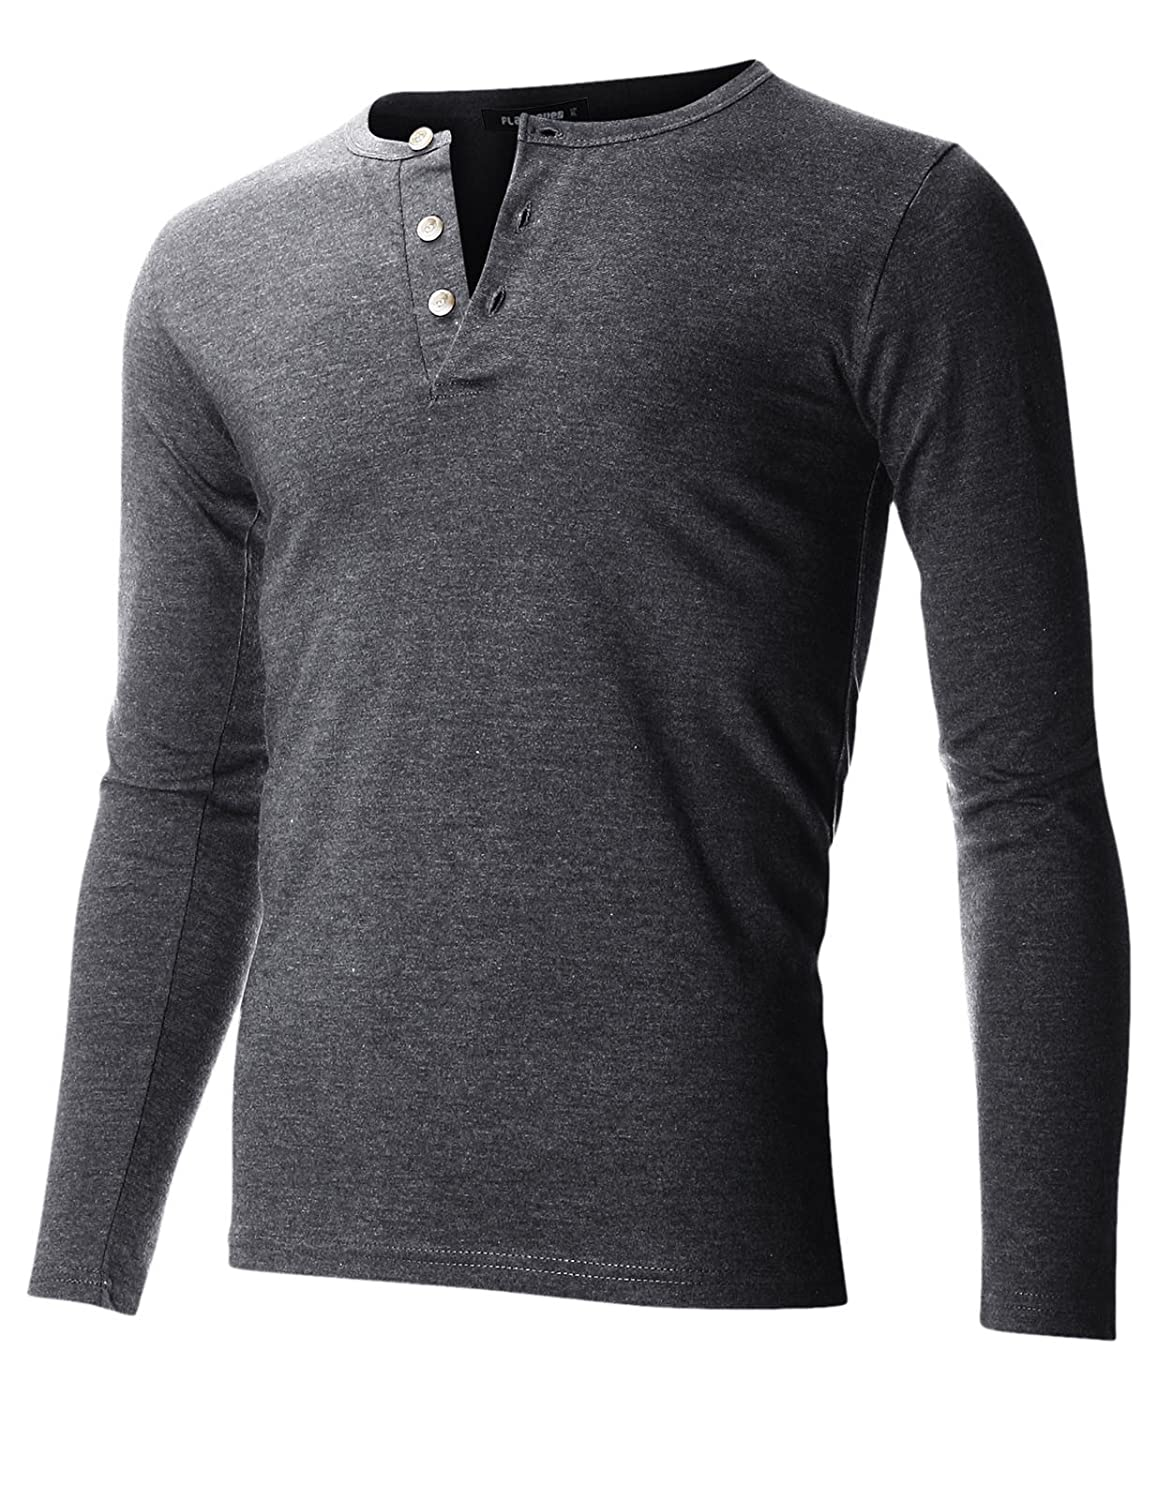 Men's Casual Henley Shirt With Button